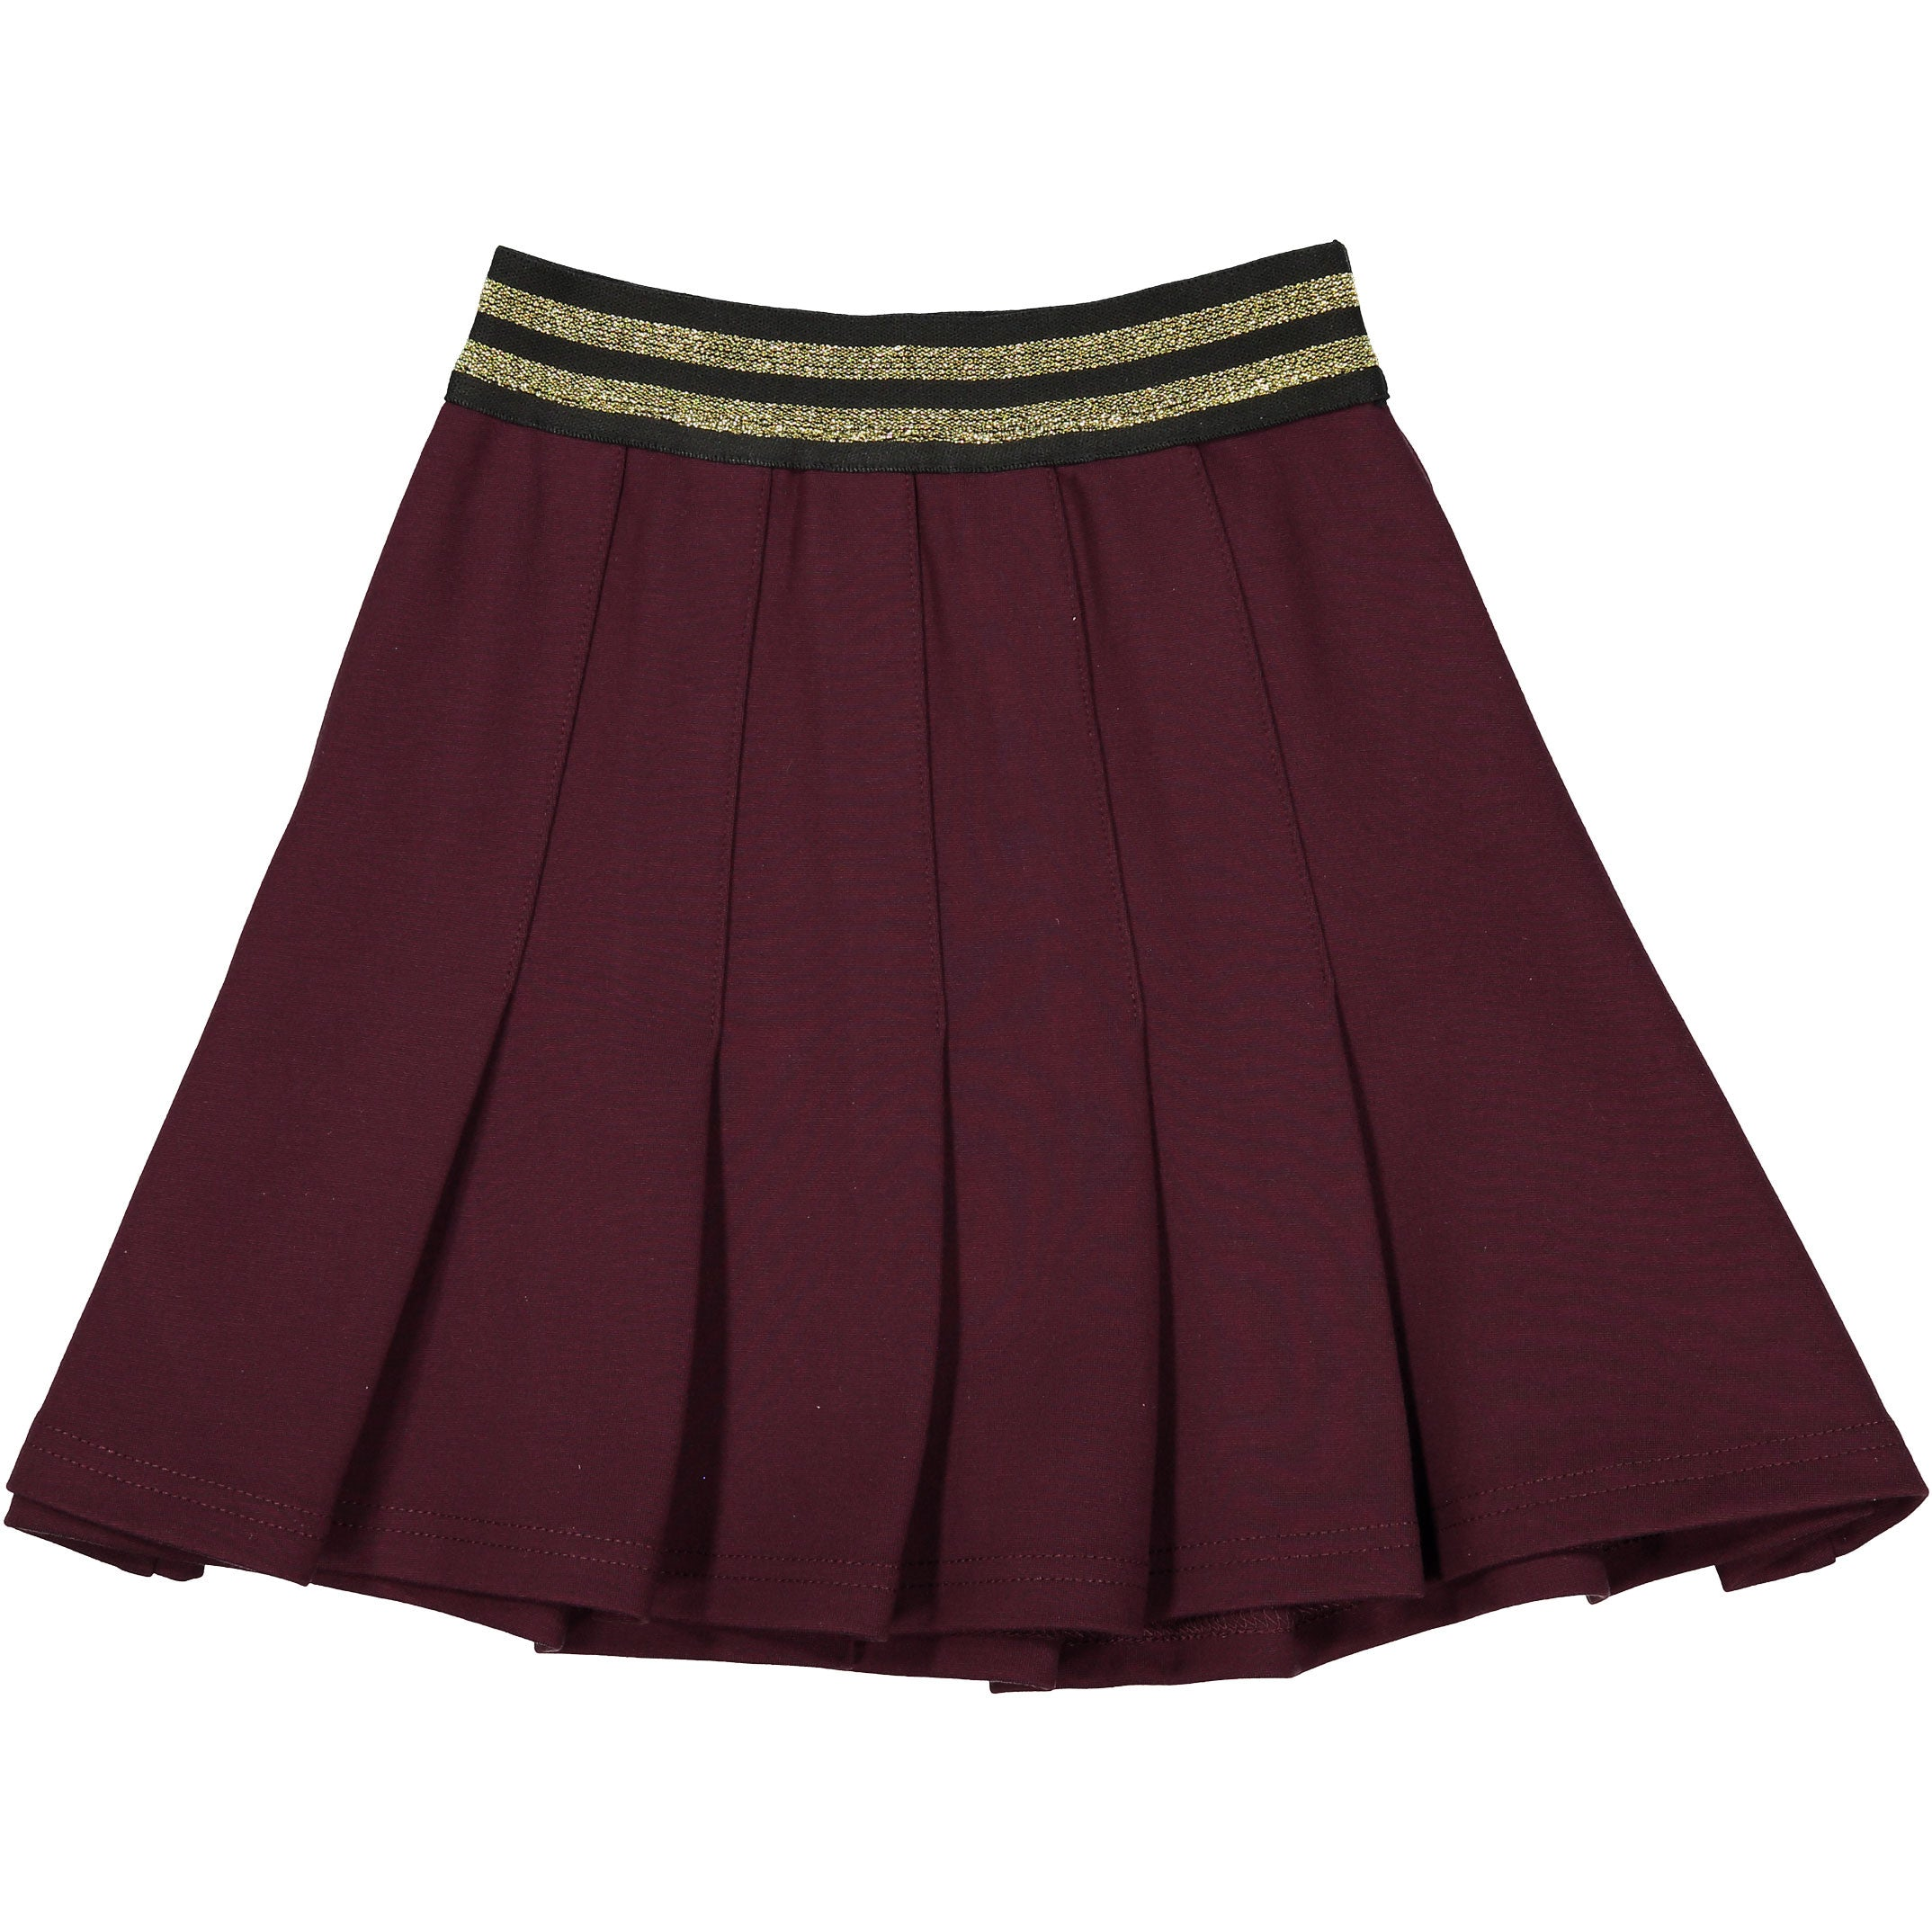 Ava & Lu Maroon Dropwaist Pleated Skirt - Ladida